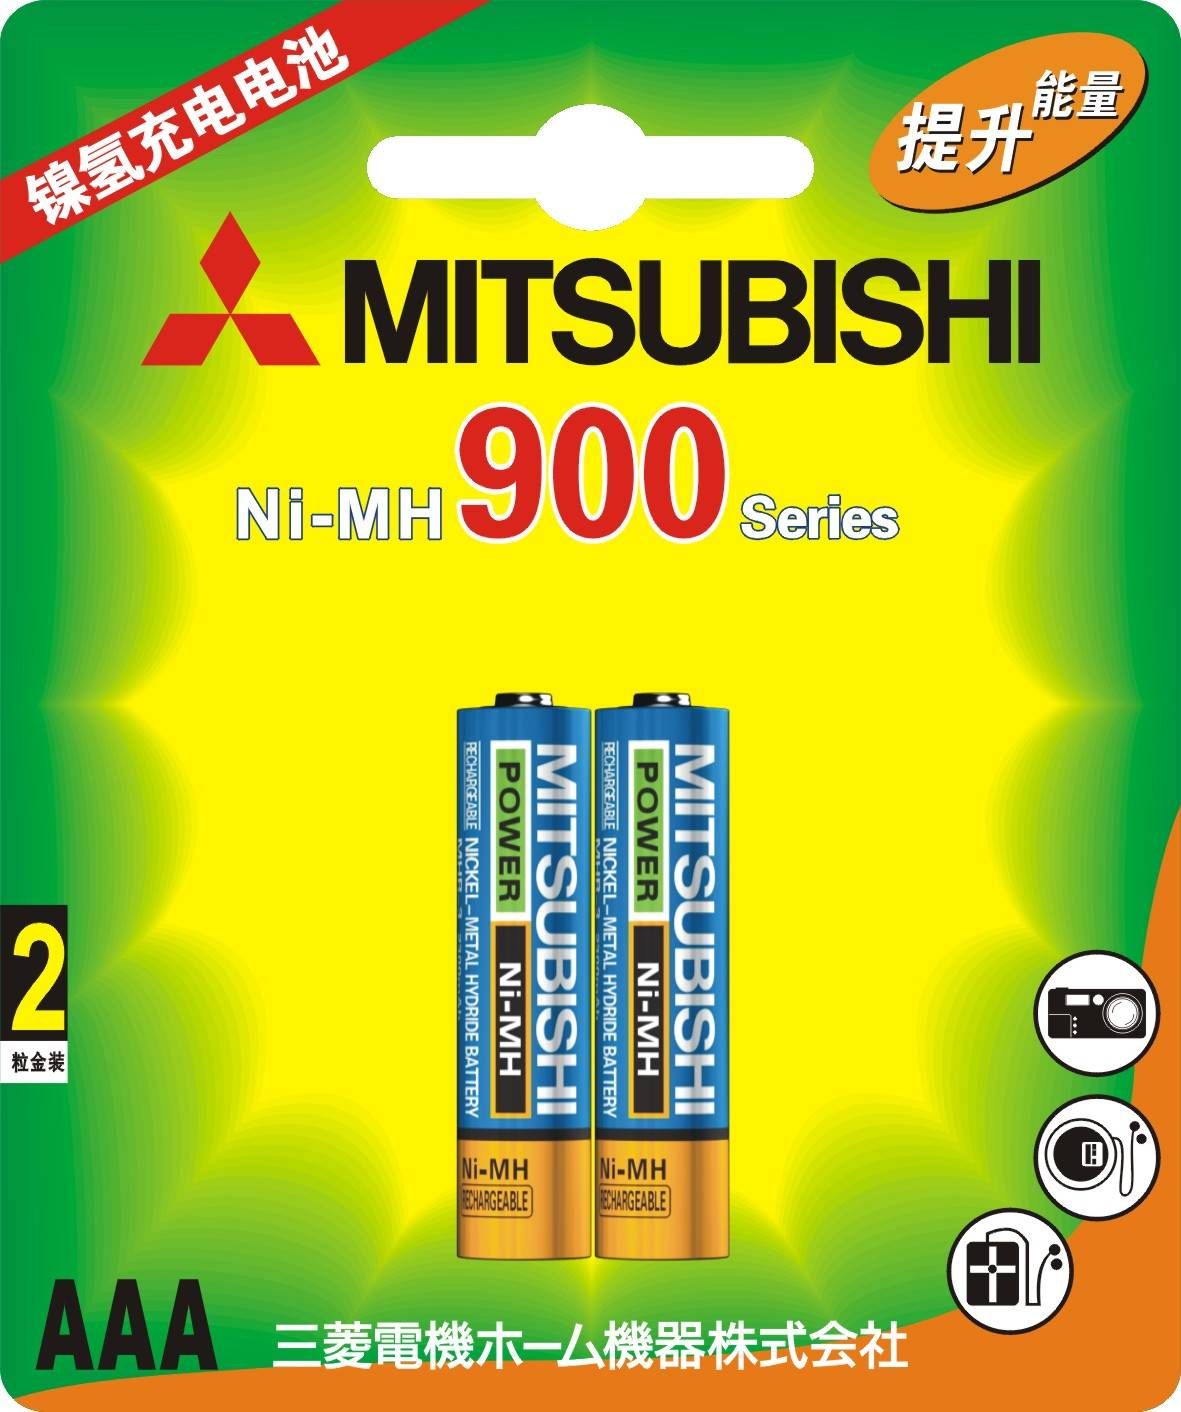 Mitsubishi Ni-MH AAA900 Rechargeable Battery